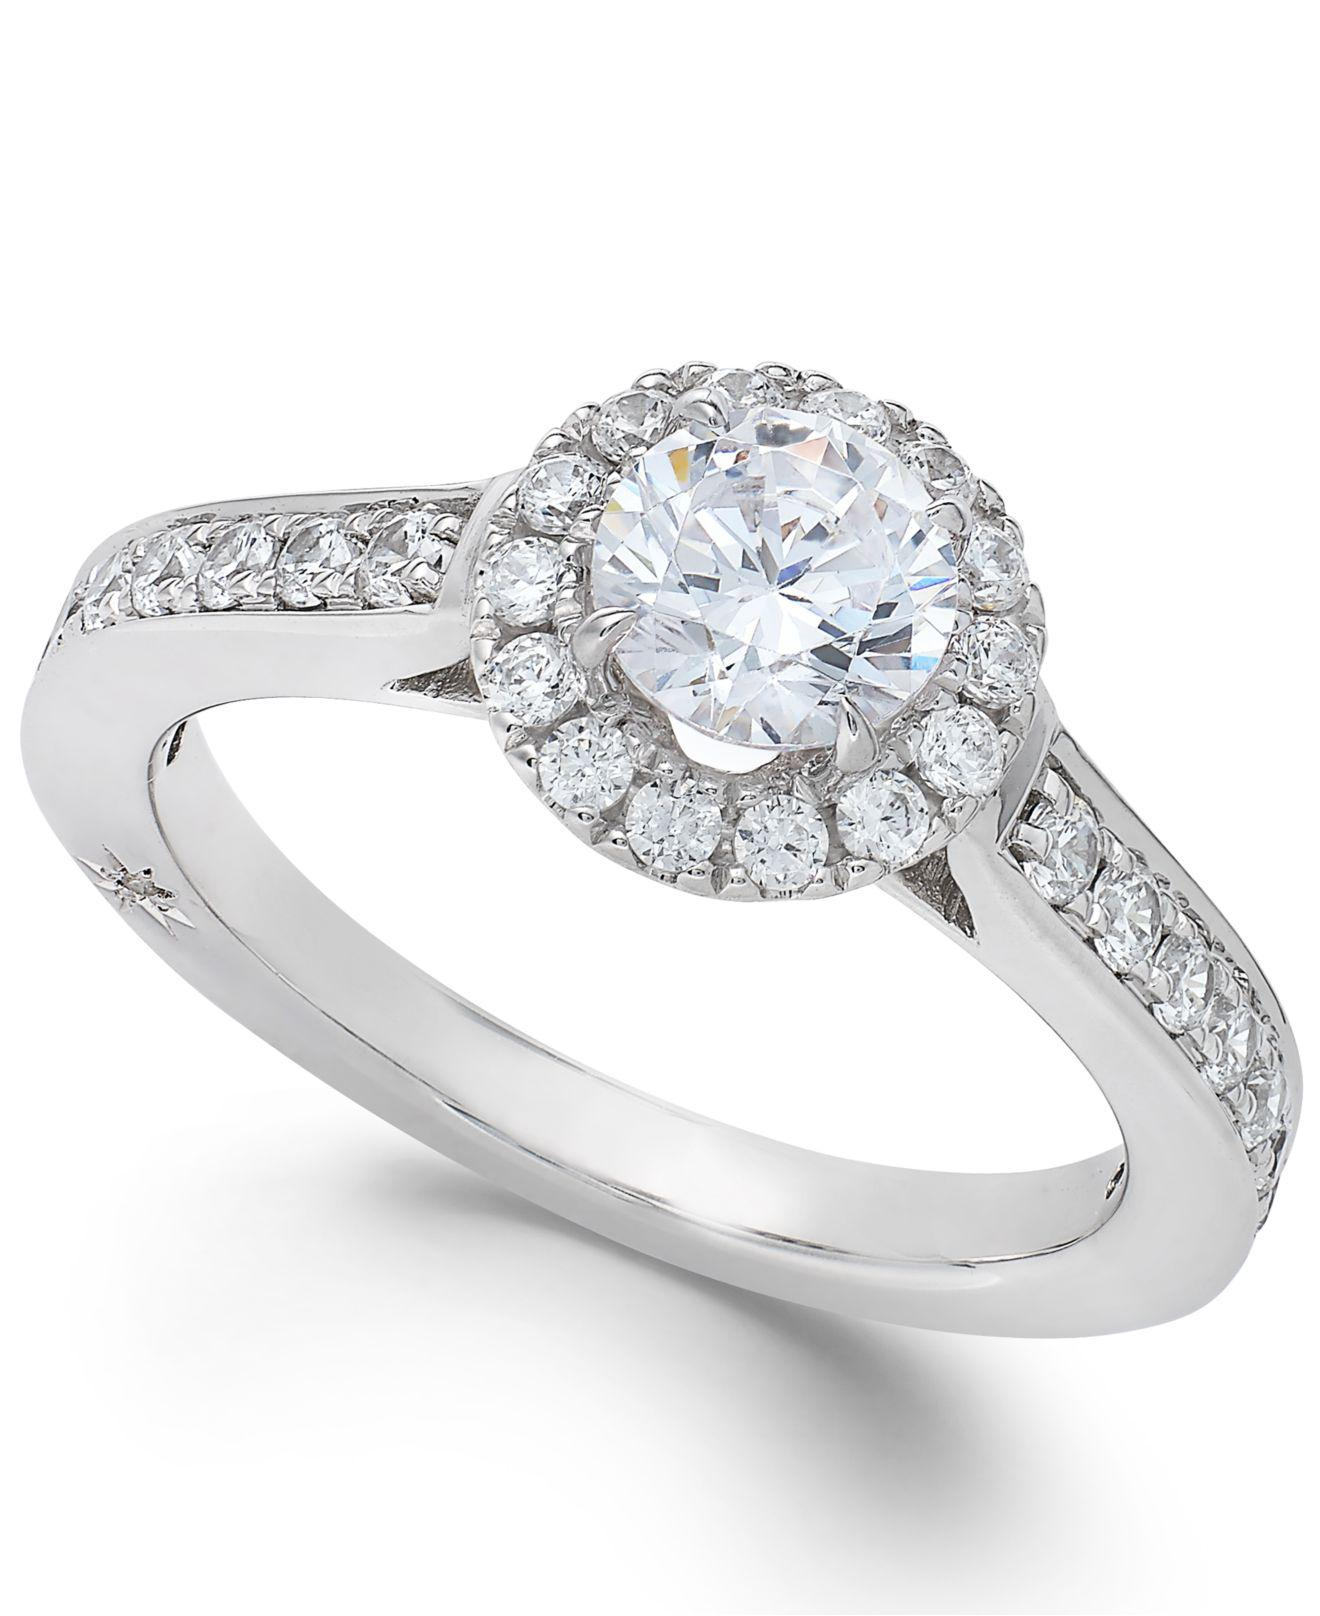 wedding engagement inspirational certified ricksalerealty elegant com diamond rings ernest solitaire of ring jones